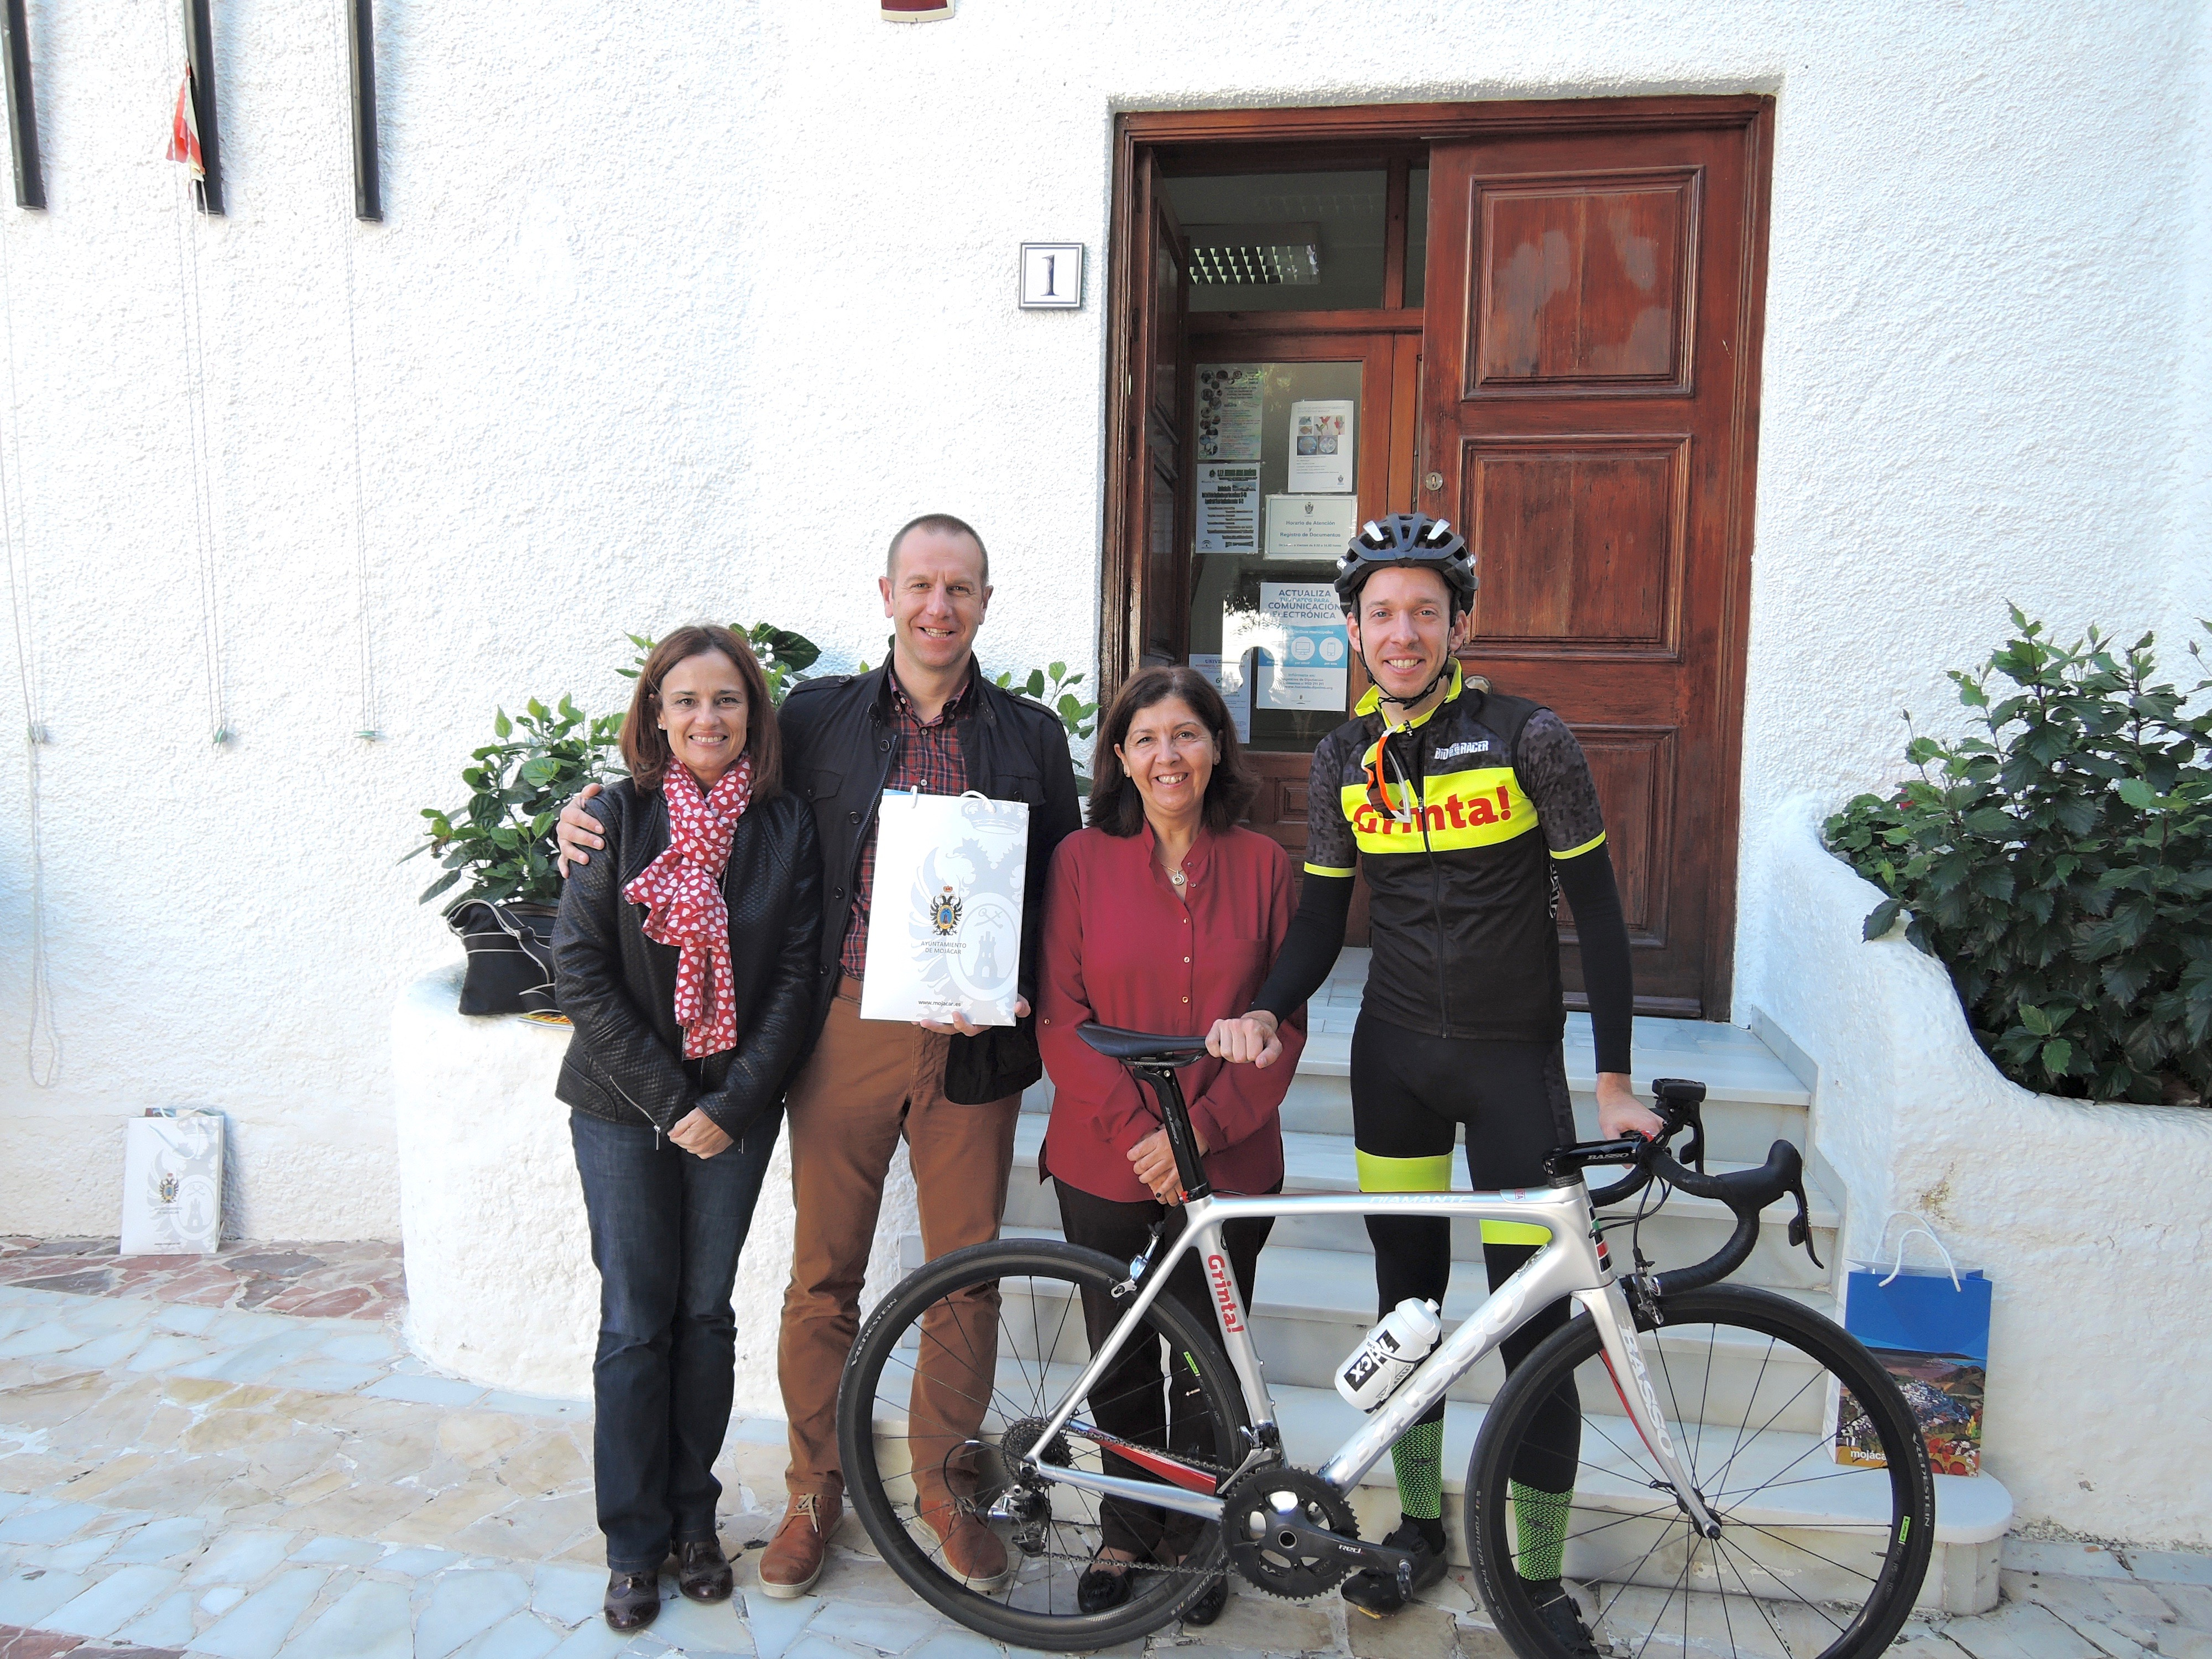 Mojácar's Mayor, Rosmari Cano, recently held a working meeting with Frederik Baeckelandt, from Grinta Magazine, Jelle Wallays, a professional racer from the Soudal Cycling Team and Jan Almeye, Director of Kortweg Cycling, the international sporting events organizers.